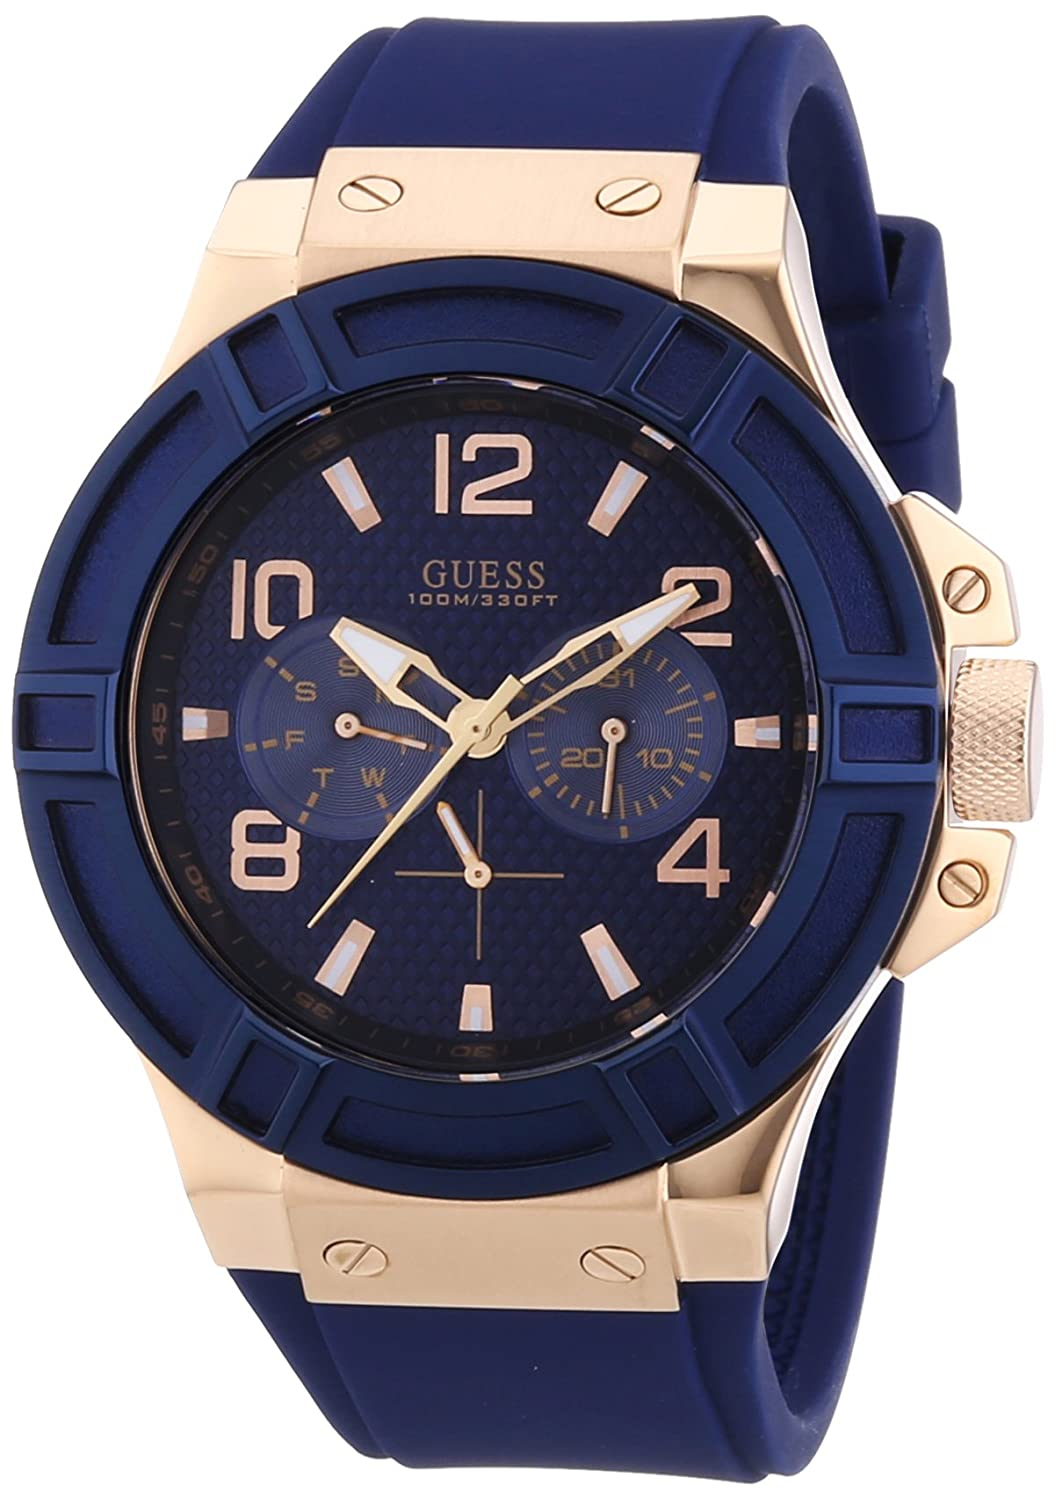 men omega beshopaholic product india online for watches